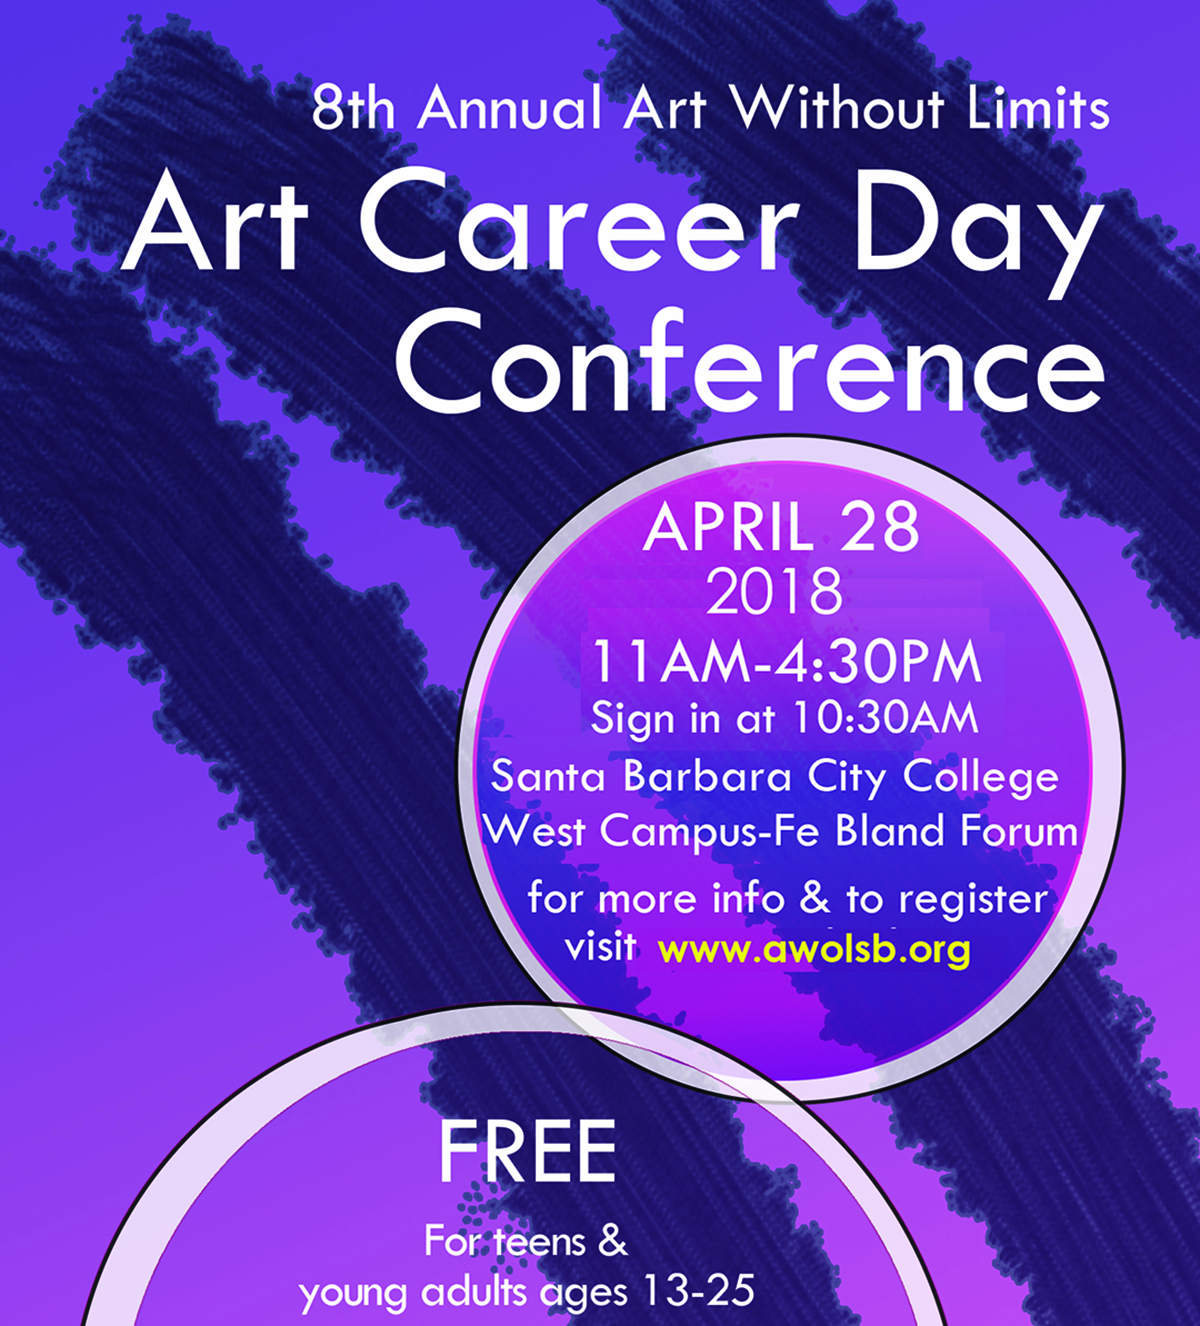 Art Without Limits 8th Annual Art Career Day Conference April 28, 2018